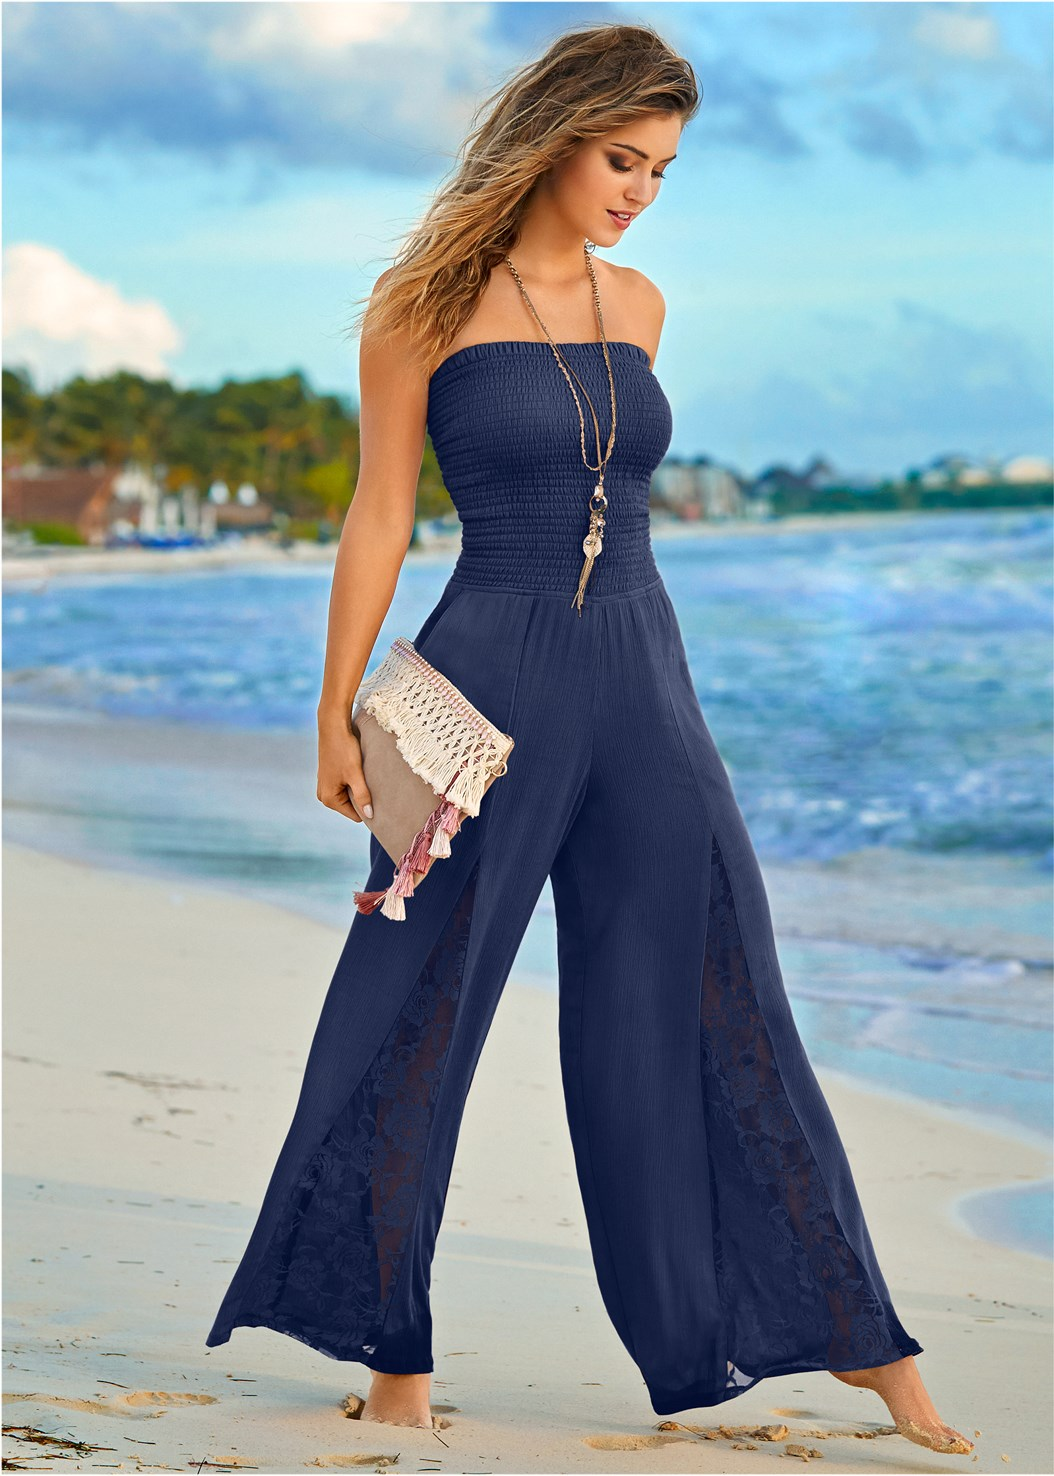 Sleeveless Smocked Jumpsuit With Lace Detail,Natural Beauty Lace Bandeau,Embellished Wedges,Striped Sequin Backpack